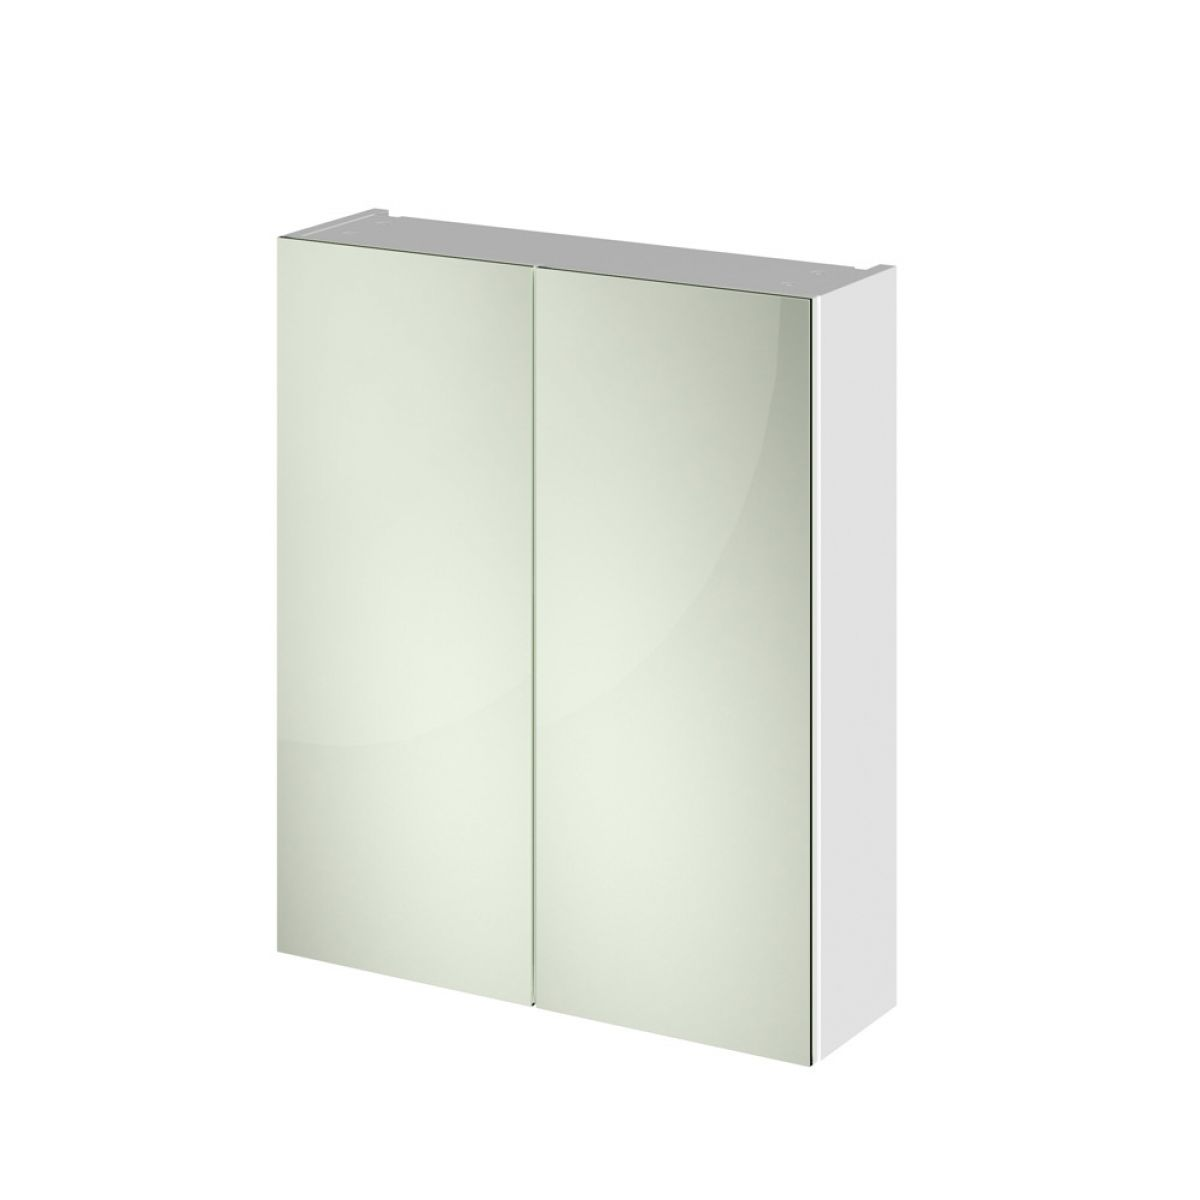 Premier Athena Double Mirrored Bathroom Cabinet